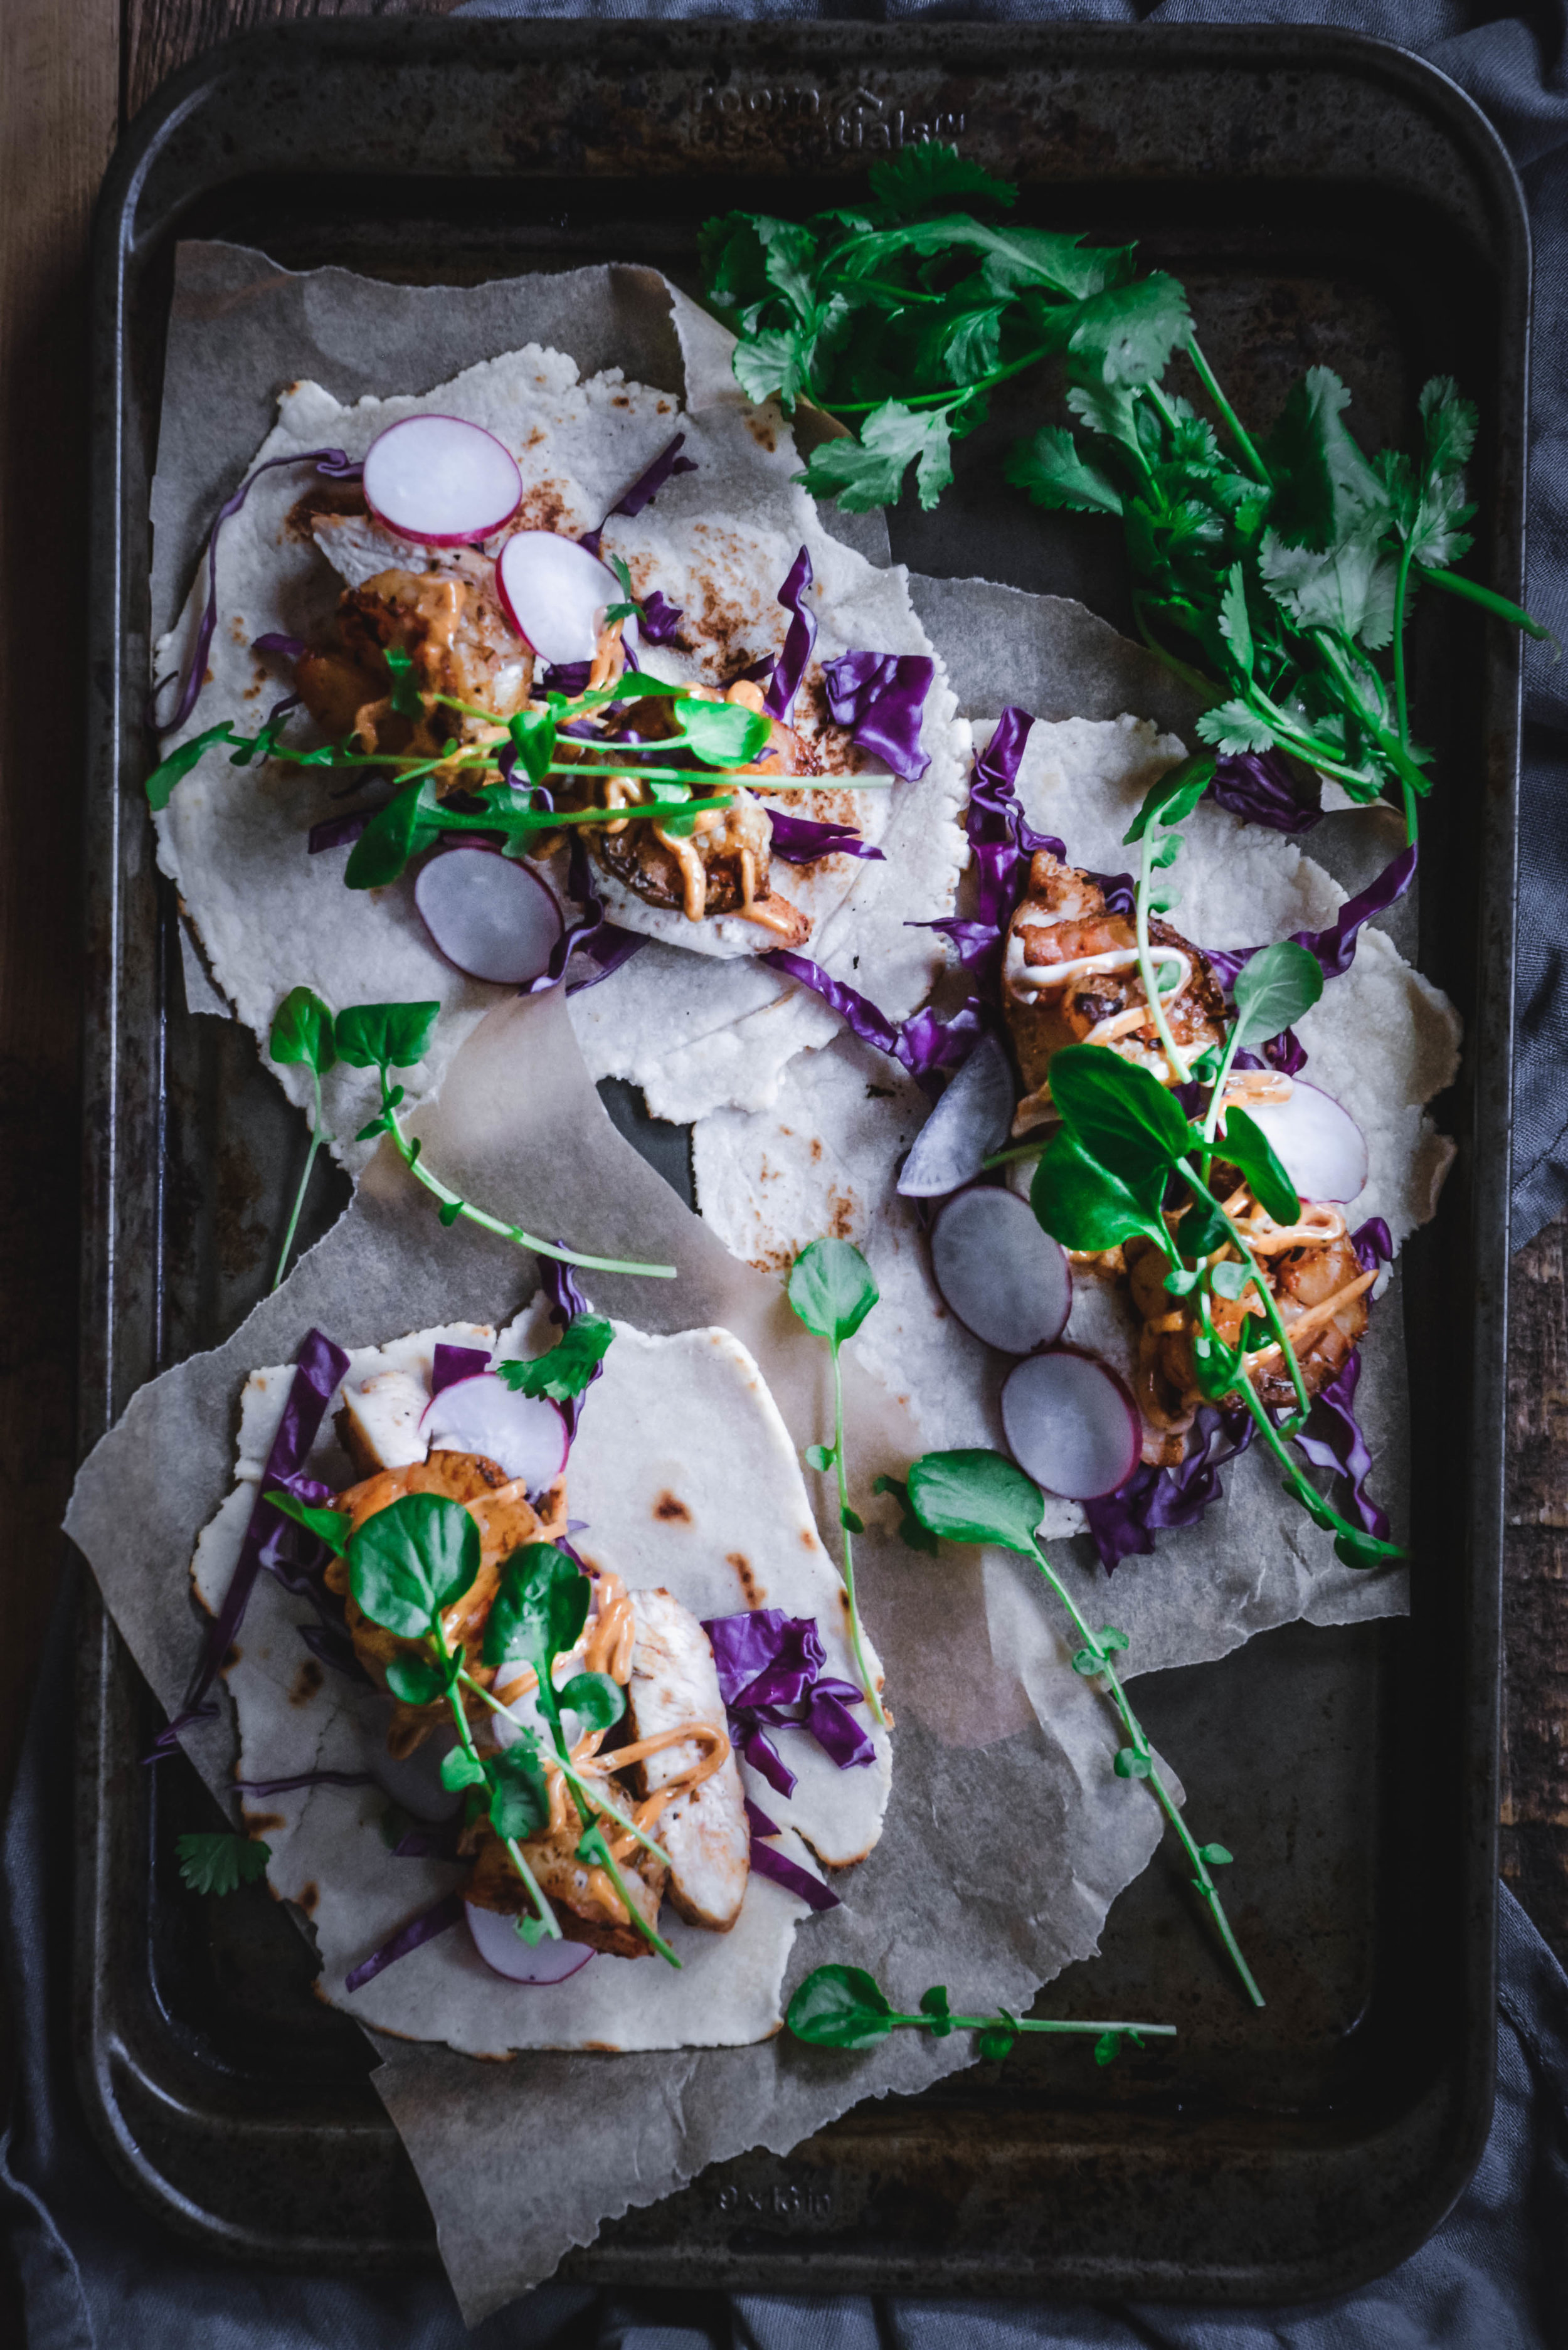 jerck chicken and shrimp tacos on tray with greens and purple cabbage